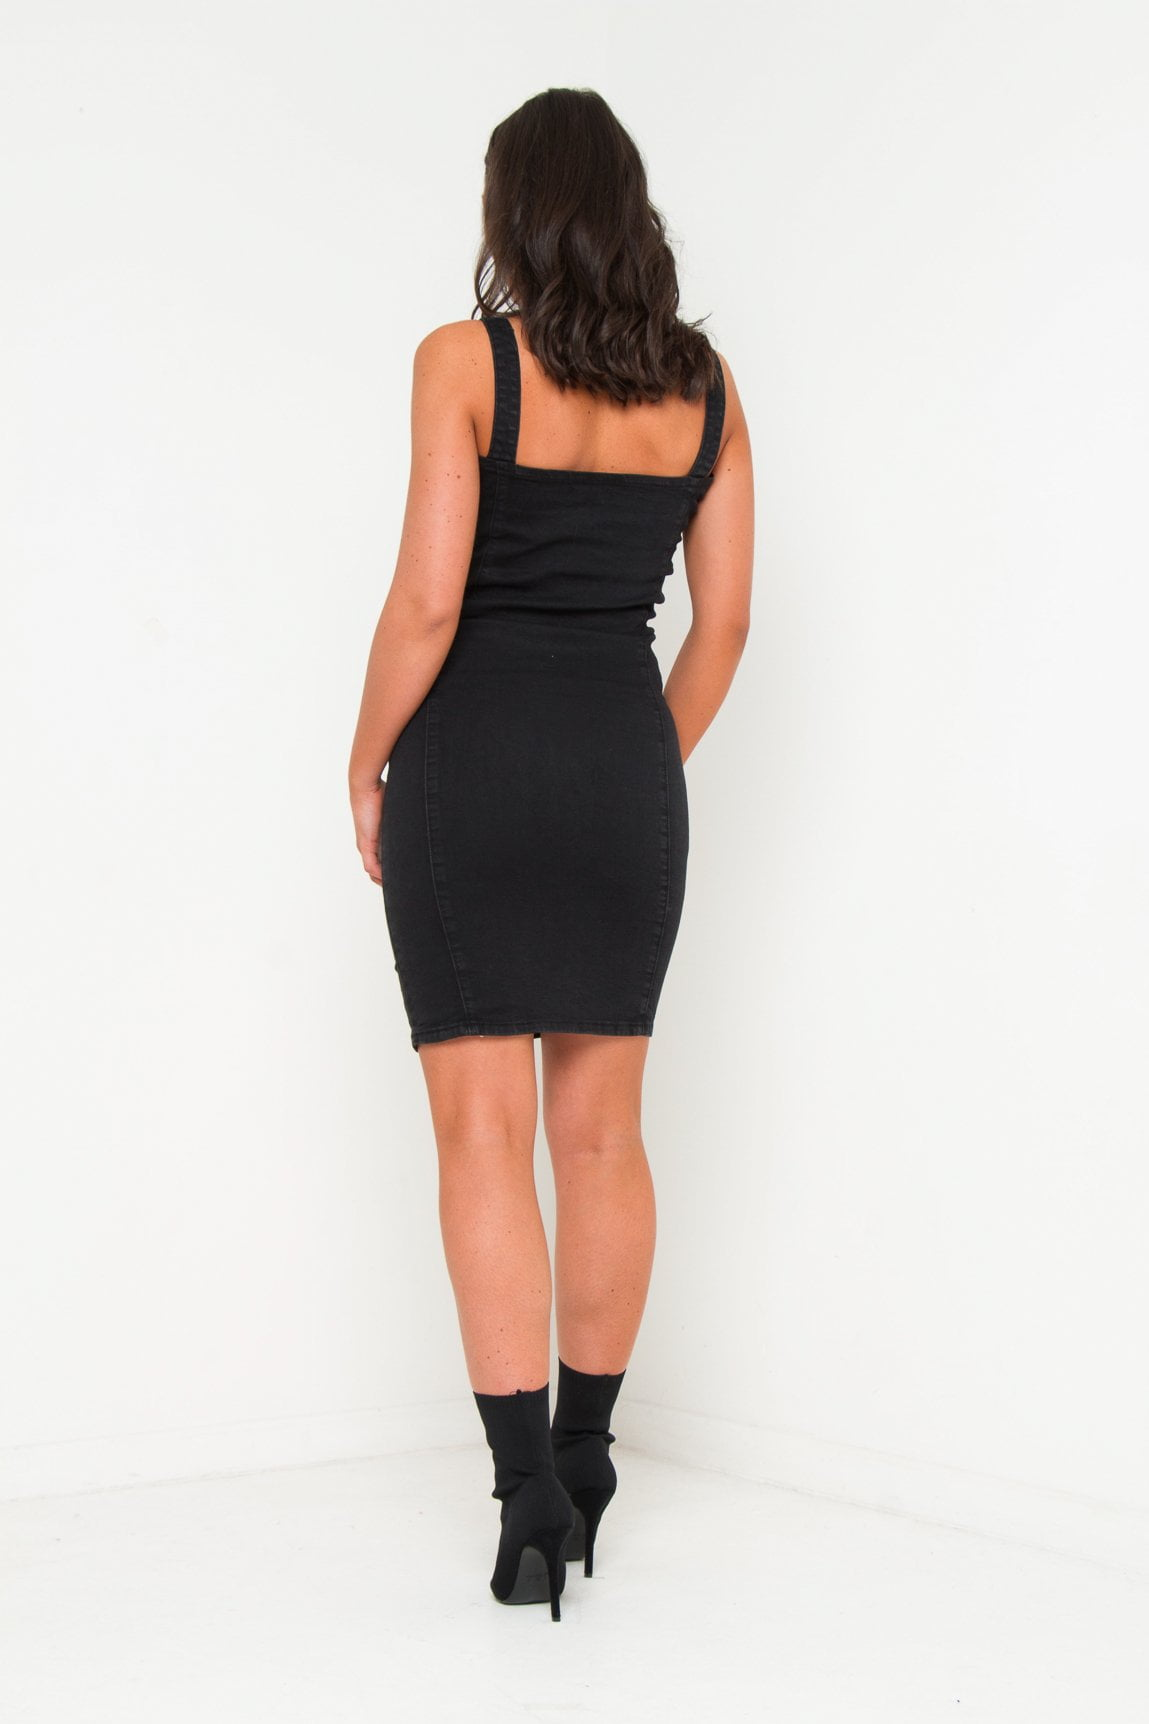 Albany Denim Midi Dress with Lace Up Detail - Liquor N Poker  Liquor N Poker